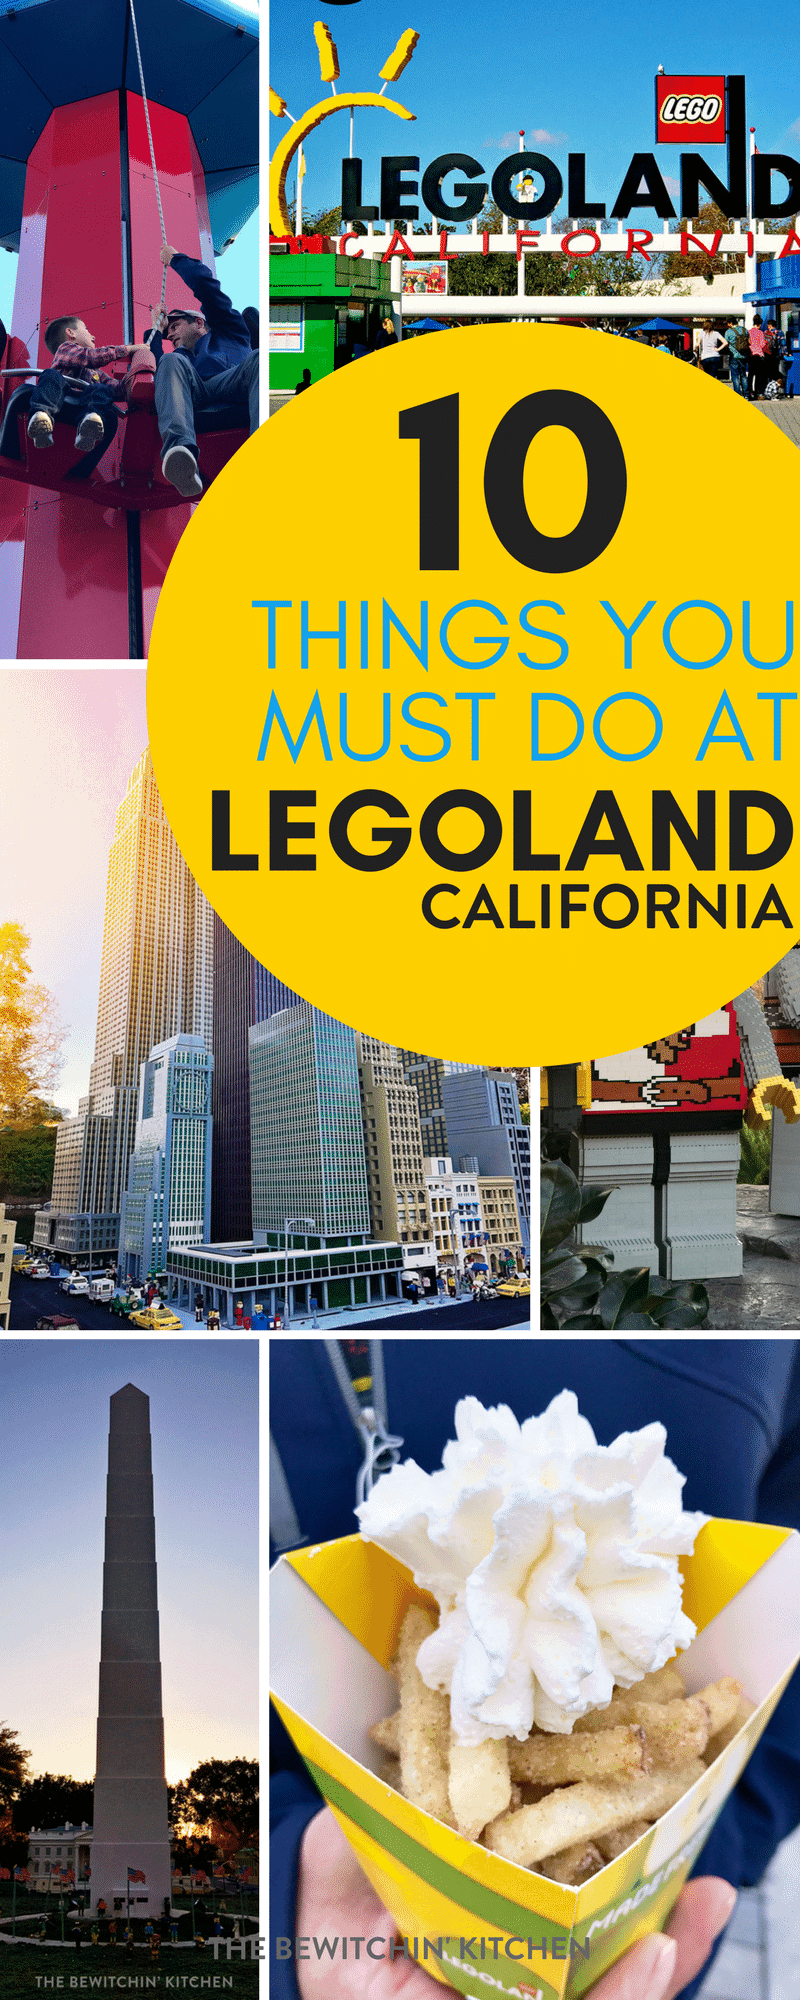 10 things you MUST DO when you visit Legoland in Carlsbad, California. No Southern California trip is complete without visiting this family theme park outside San Diego. Our family had so much fun here on vacation!